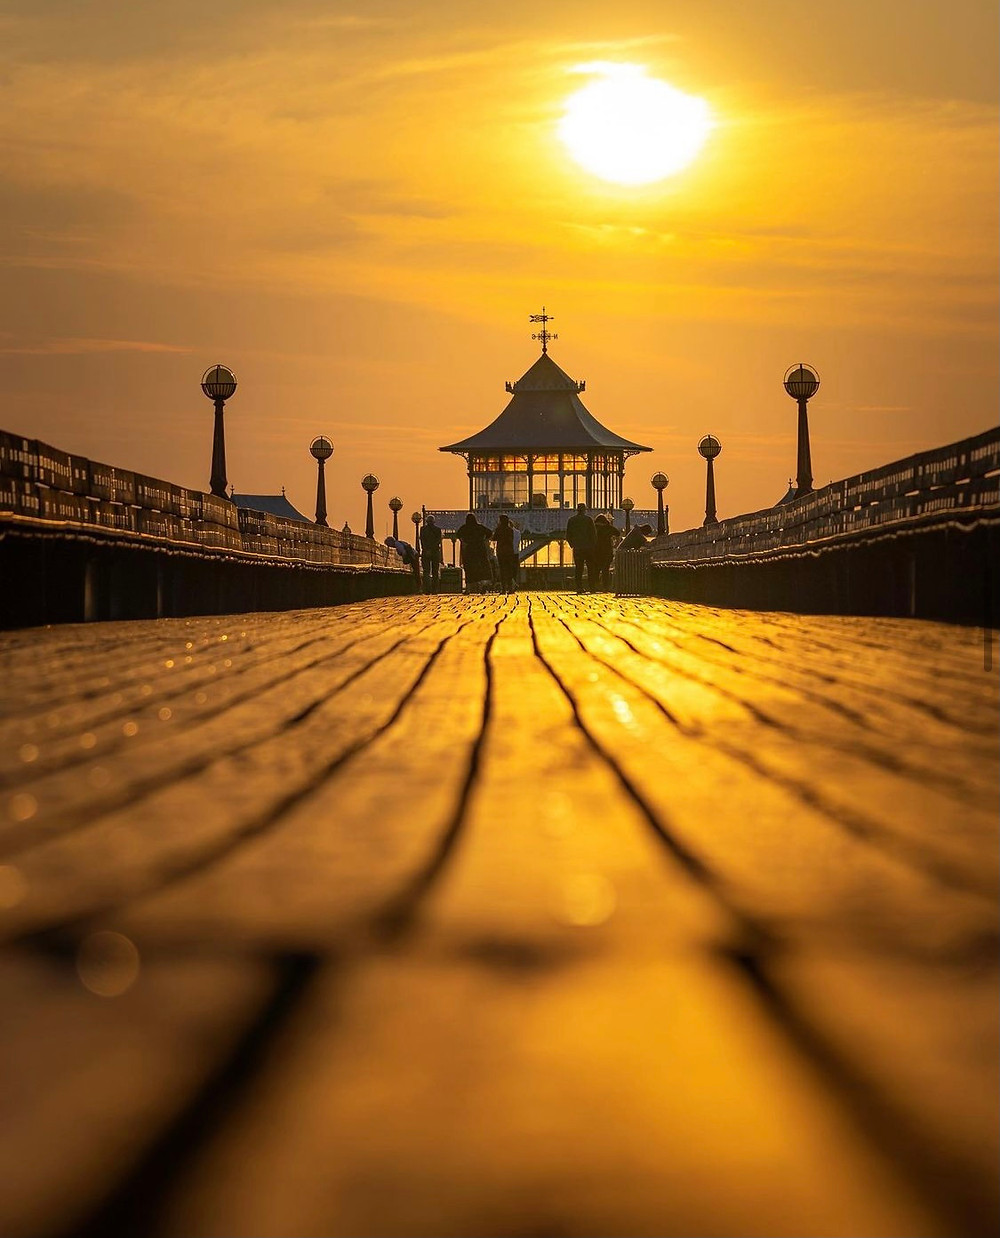 Clevedon Pier, Somerset cool, Somerset cool blog, Somerset blogger, Somerset blog